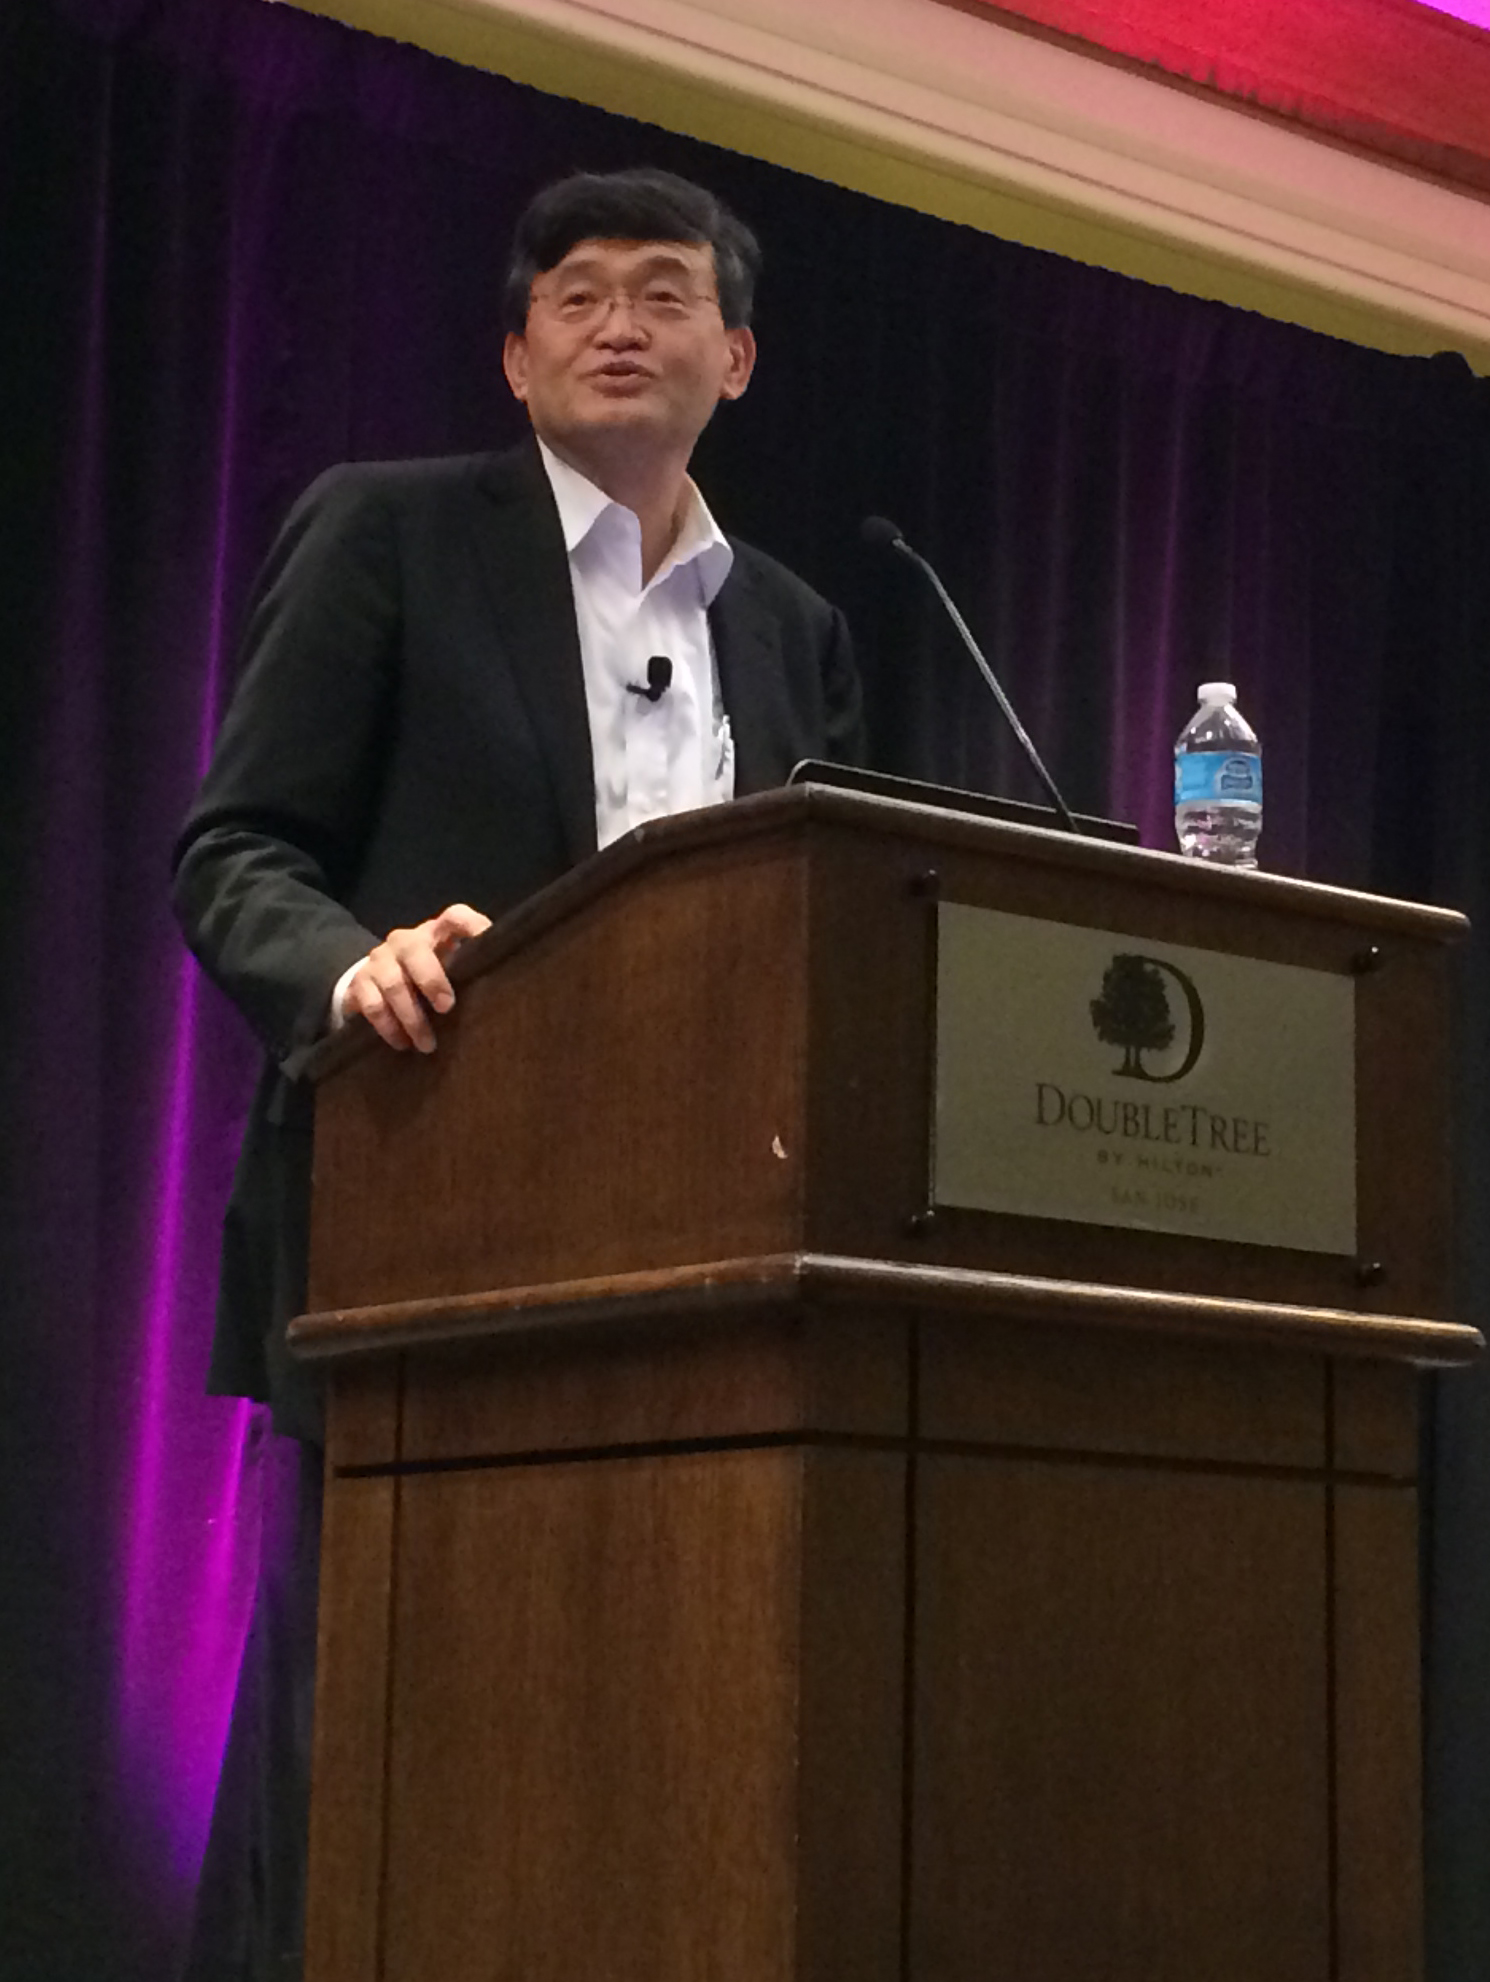 Cadence CEO Lip-bu Tan keynoting DVCon 2014